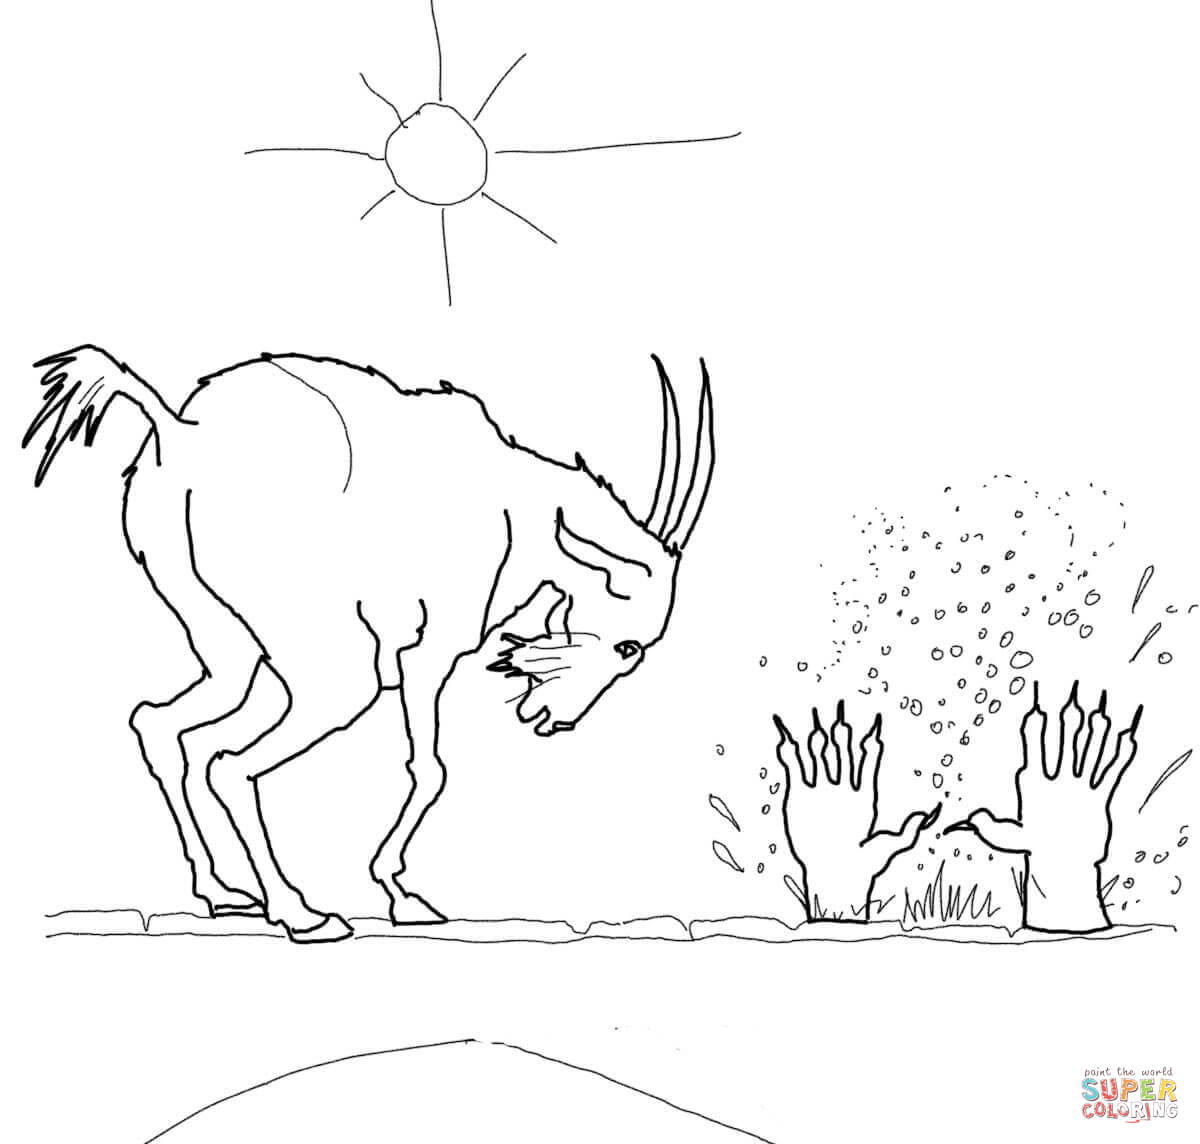 three billy goats gruff coloring pages billy goats gruff coloring page big billy goat troll gruff coloring goats billy three pages